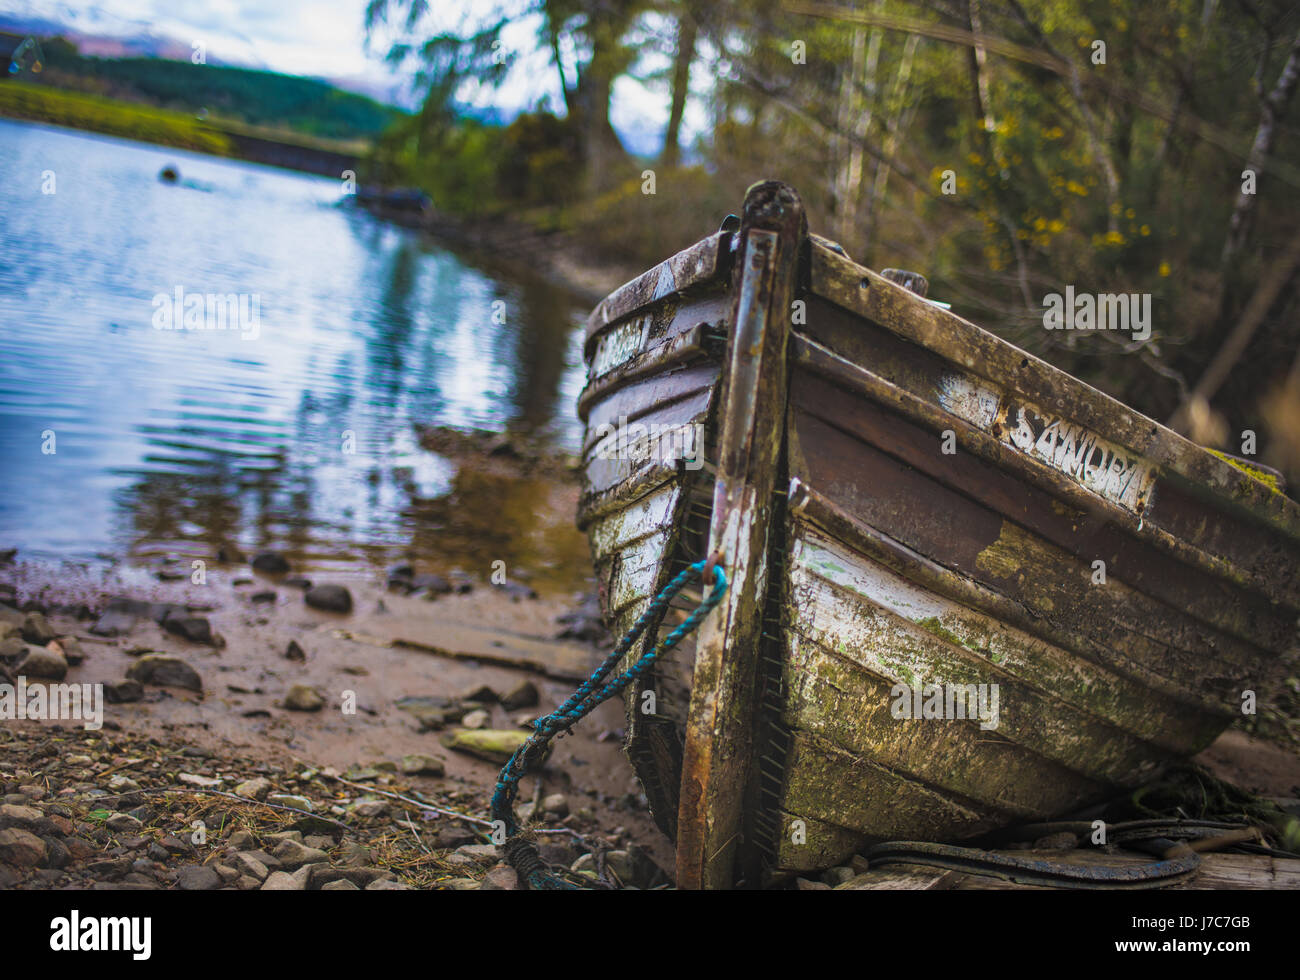 Old wooden dingy at Gairlocky bay - Stock Image